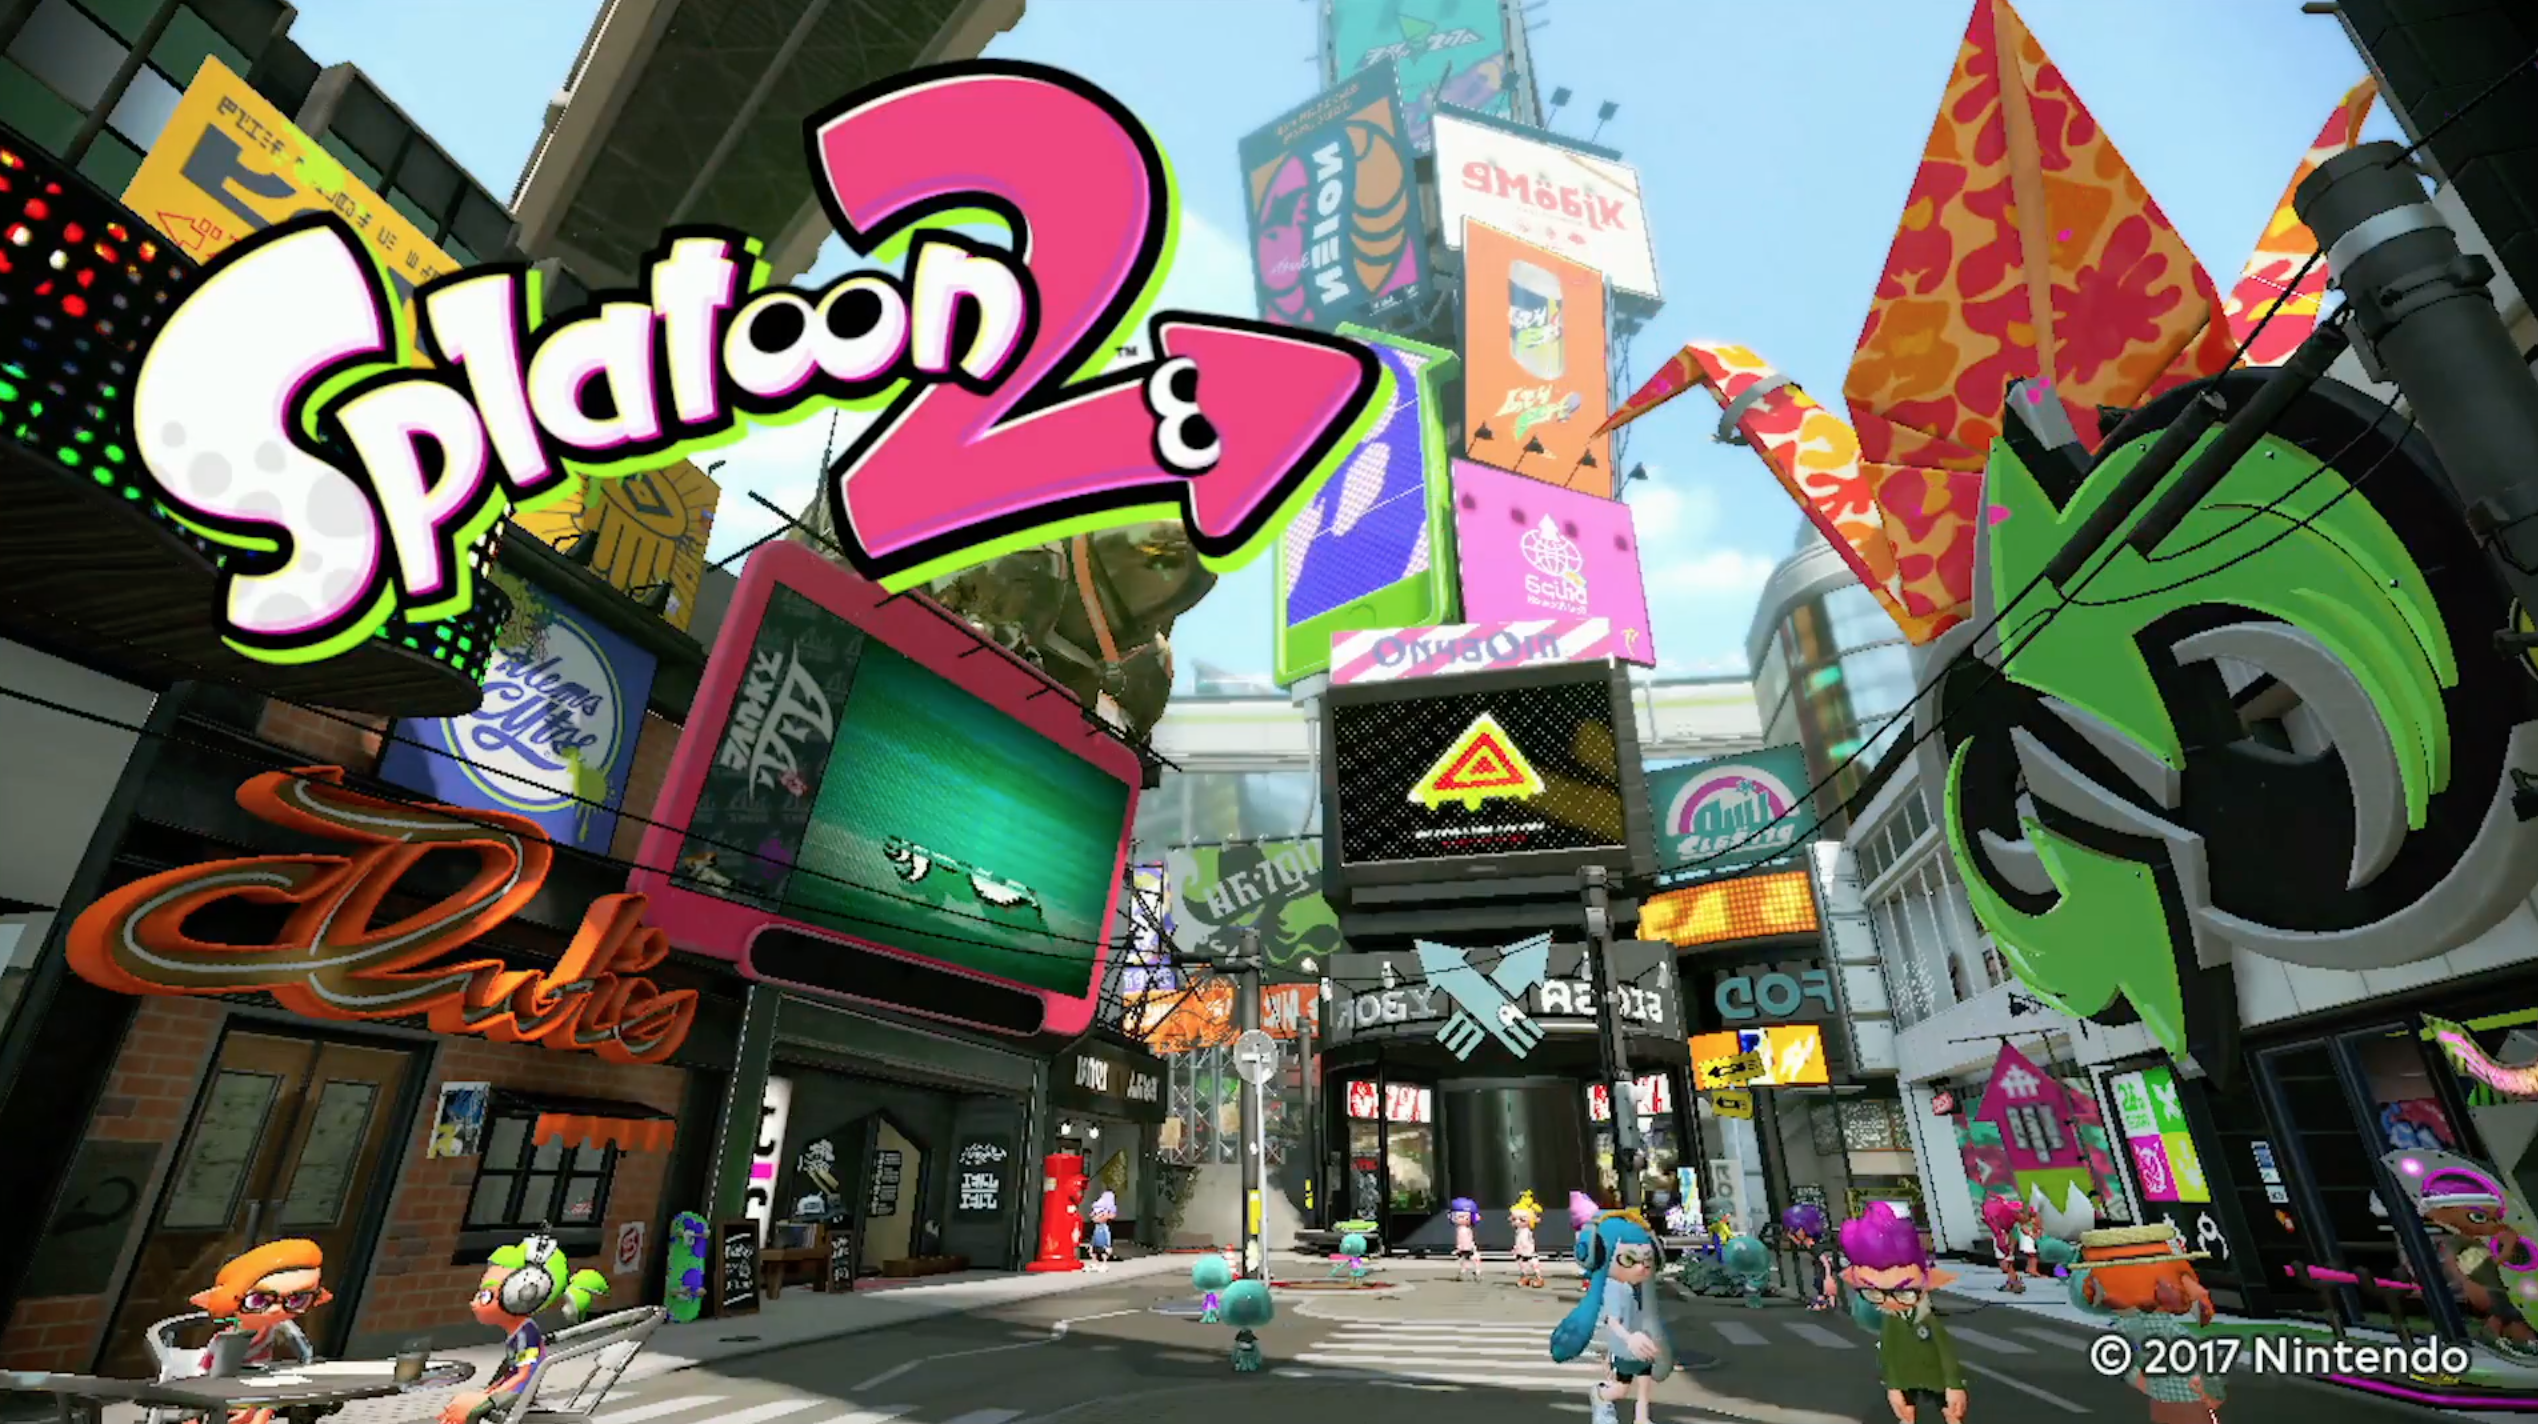 splatoon 2 brings new weapons stages and fashion to nintendo switch